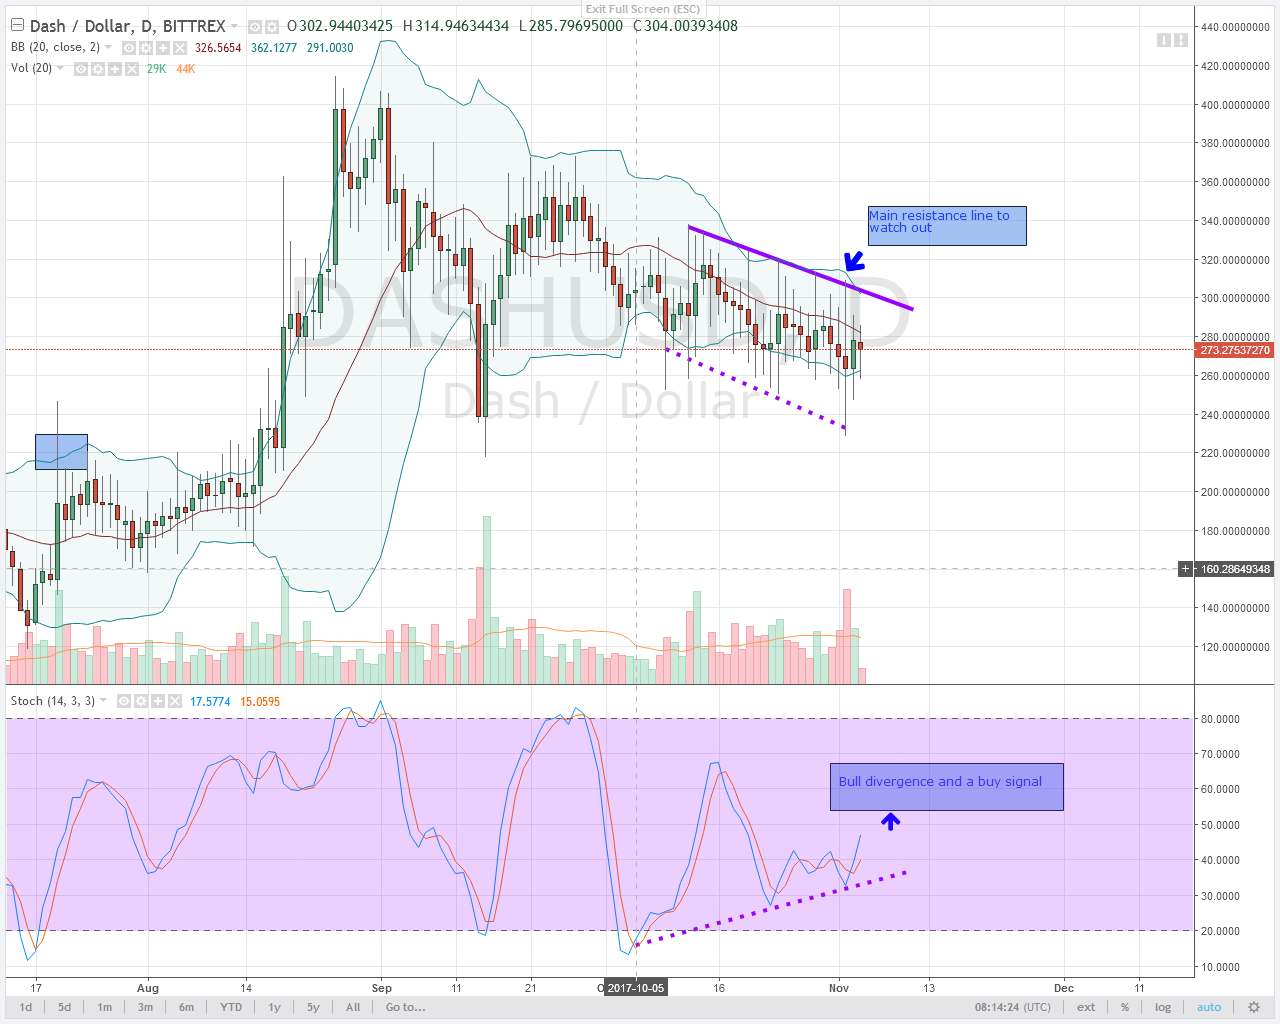 bull divergence in alt coin DASH daily chart